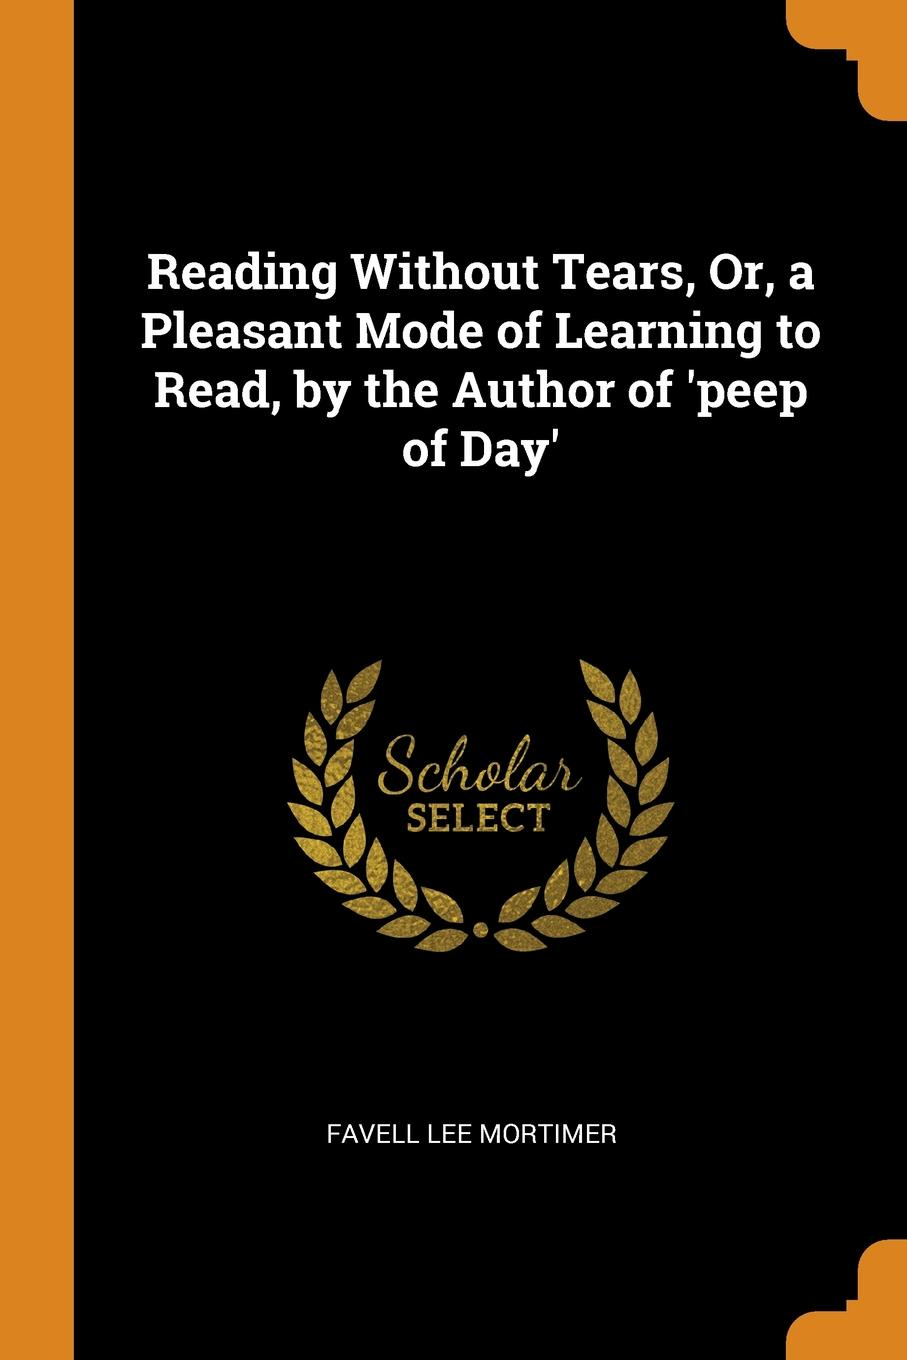 Favell Lee Mortimer Reading Without Tears, Or, a Pleasant Mode of Learning to Read, by the Author of .peep of Day. peep ehasalu hullu munga päevik